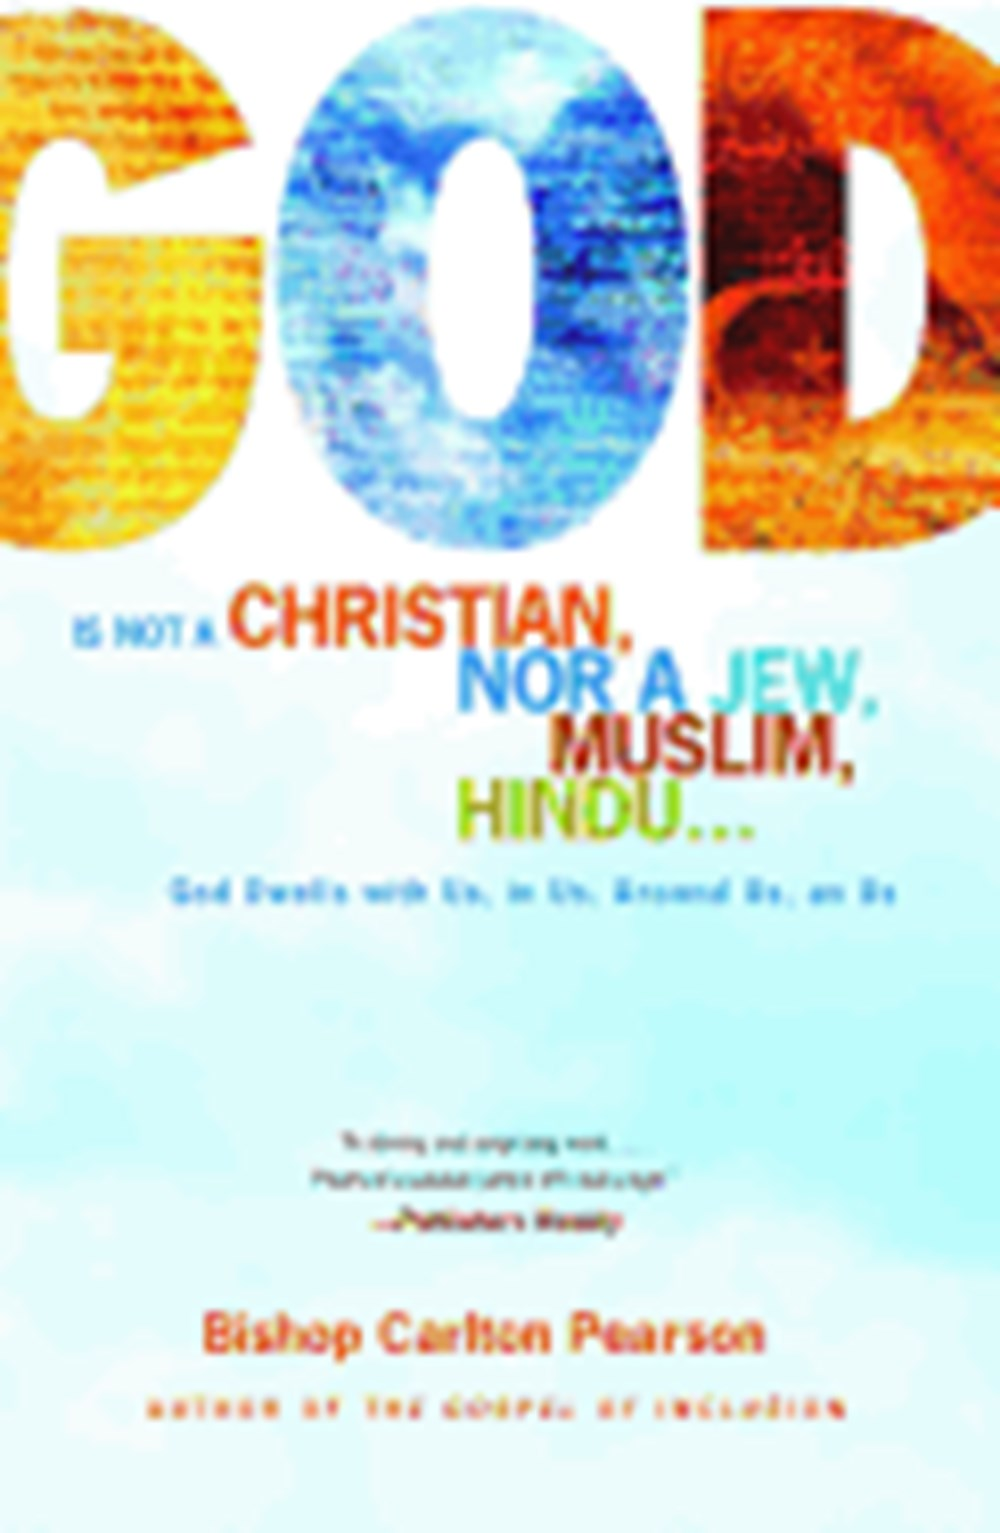 God Is Not a Christian, Nor a Jew, Muslim, Hindu... God Dwells with Us, in Us, Around Us, as Us